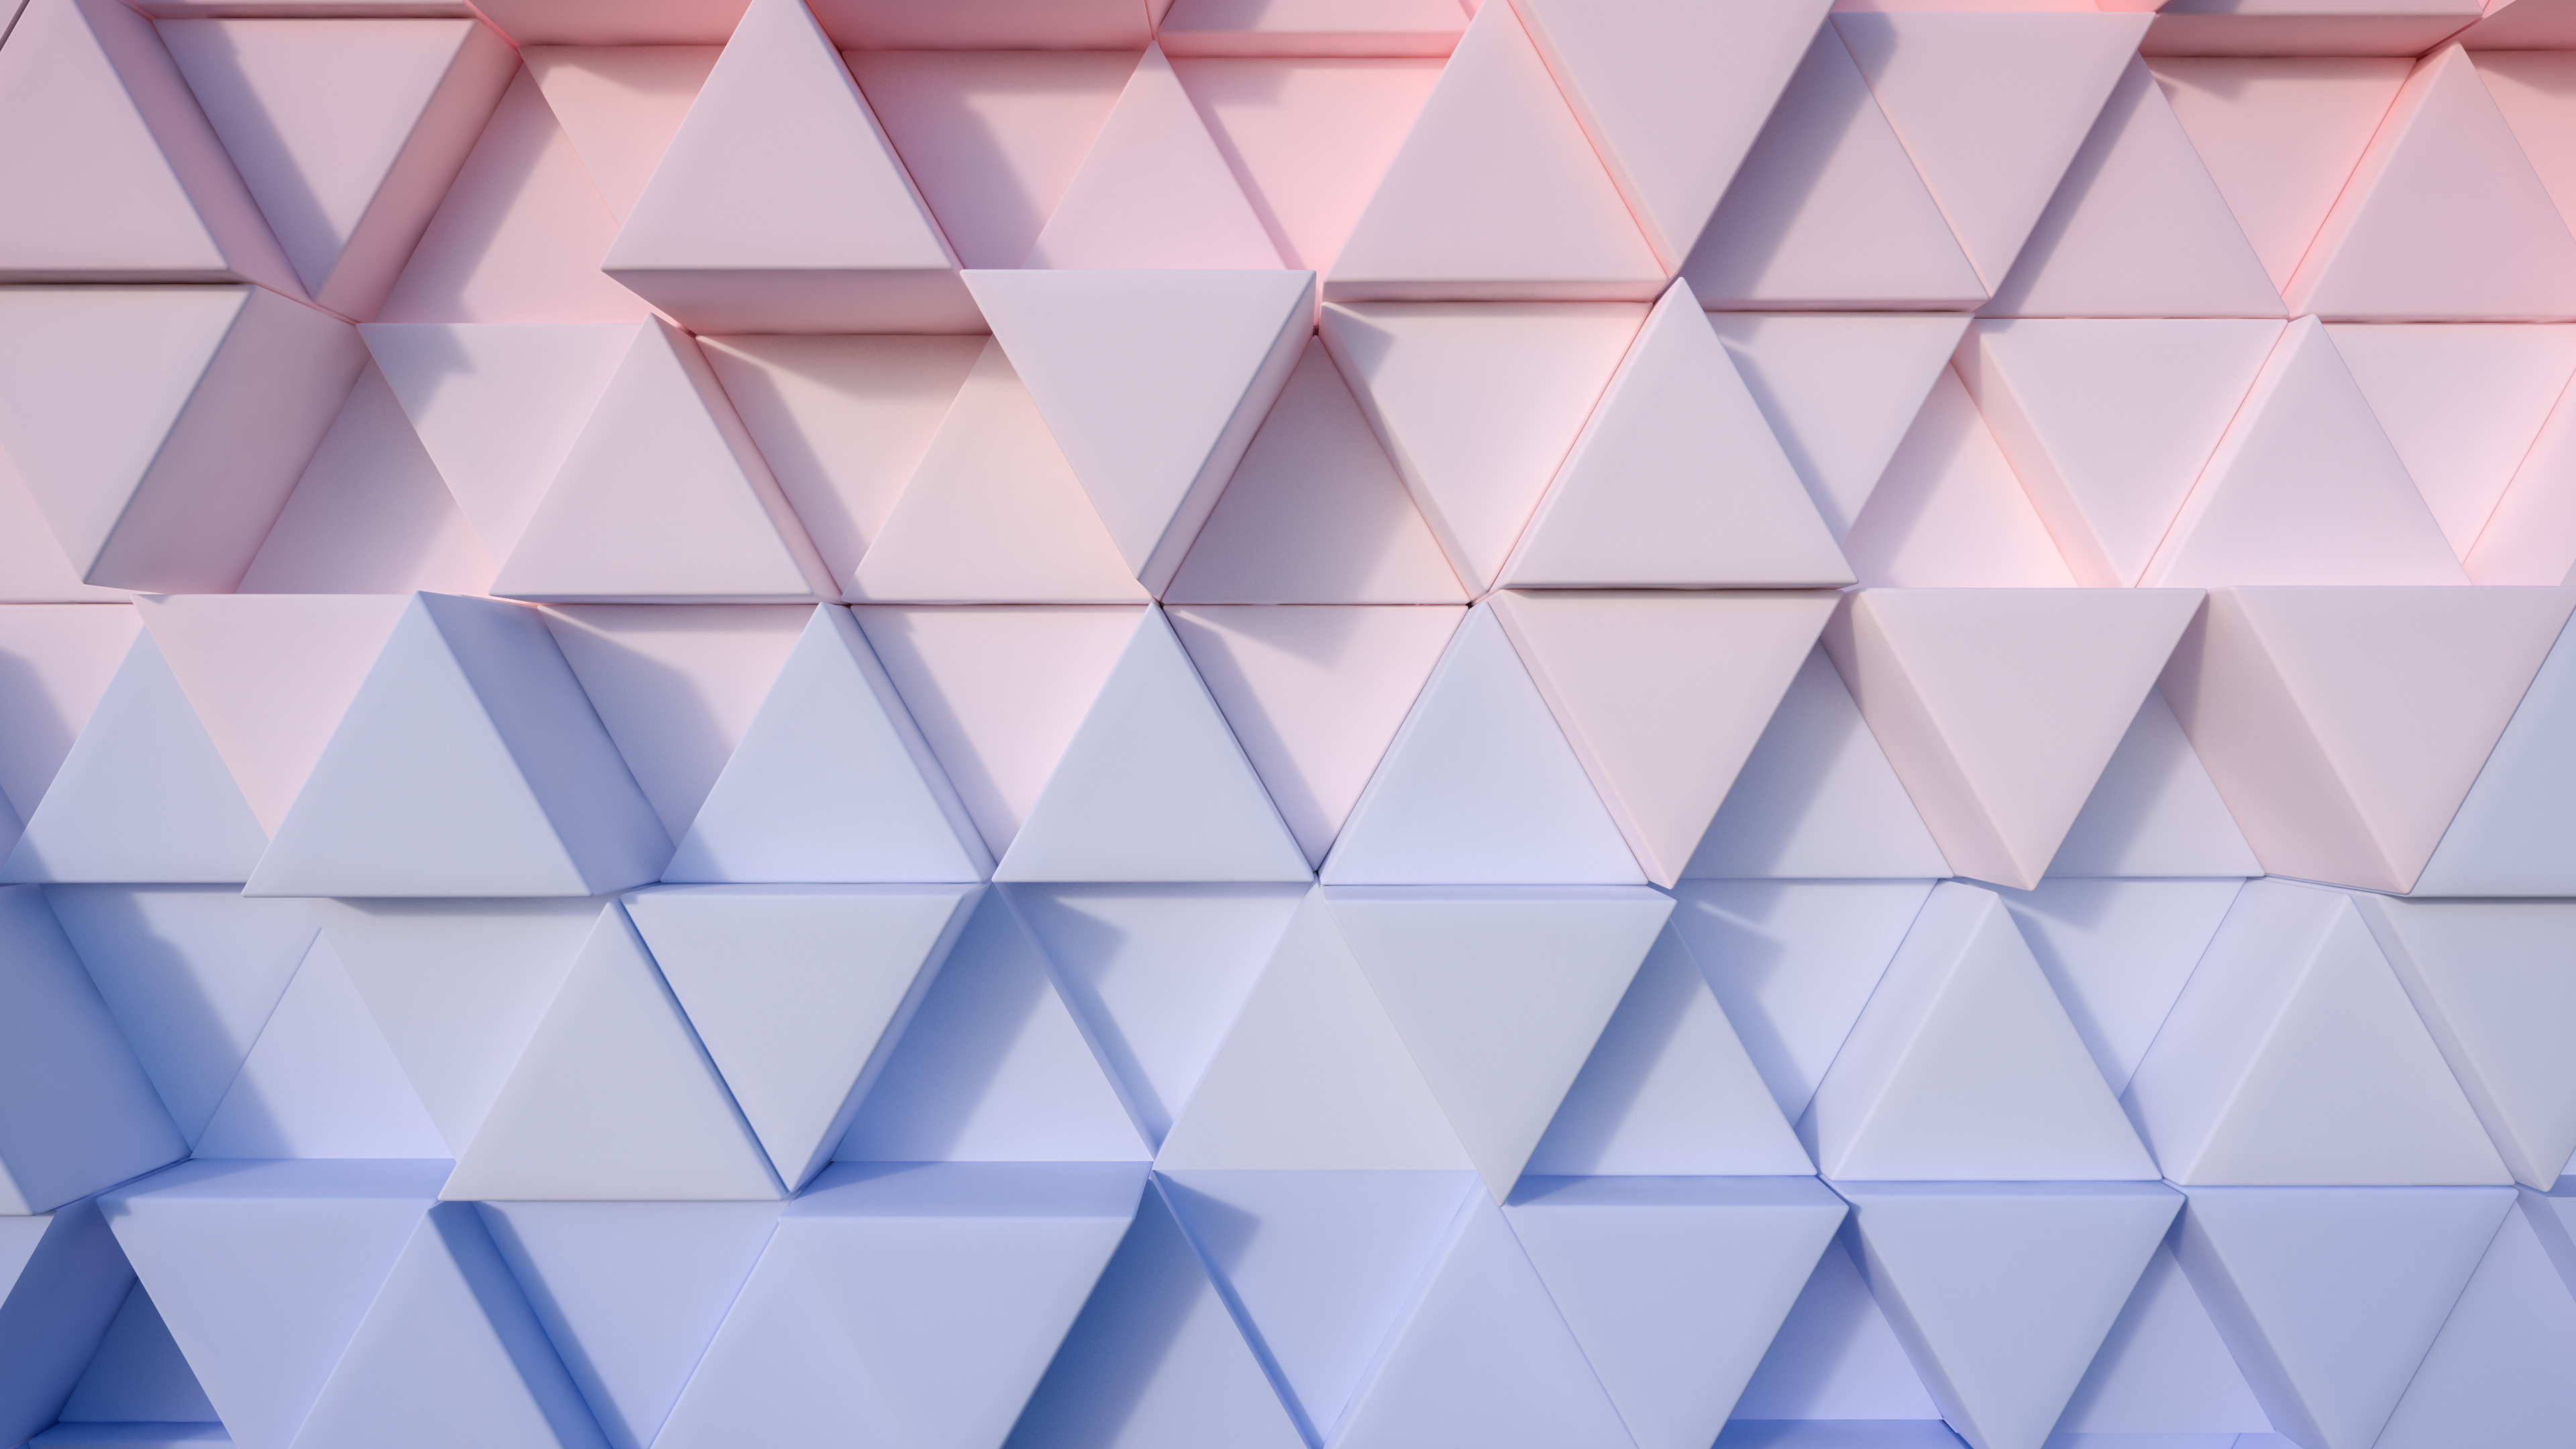 triangle pastel 3d 4k 1540751498 - Triangle Pastel 3d 4k - triangle wallpapers, hd-wallpapers, digital art wallpapers, artist wallpapers, 4k-wallpapers, 3d wallpapers